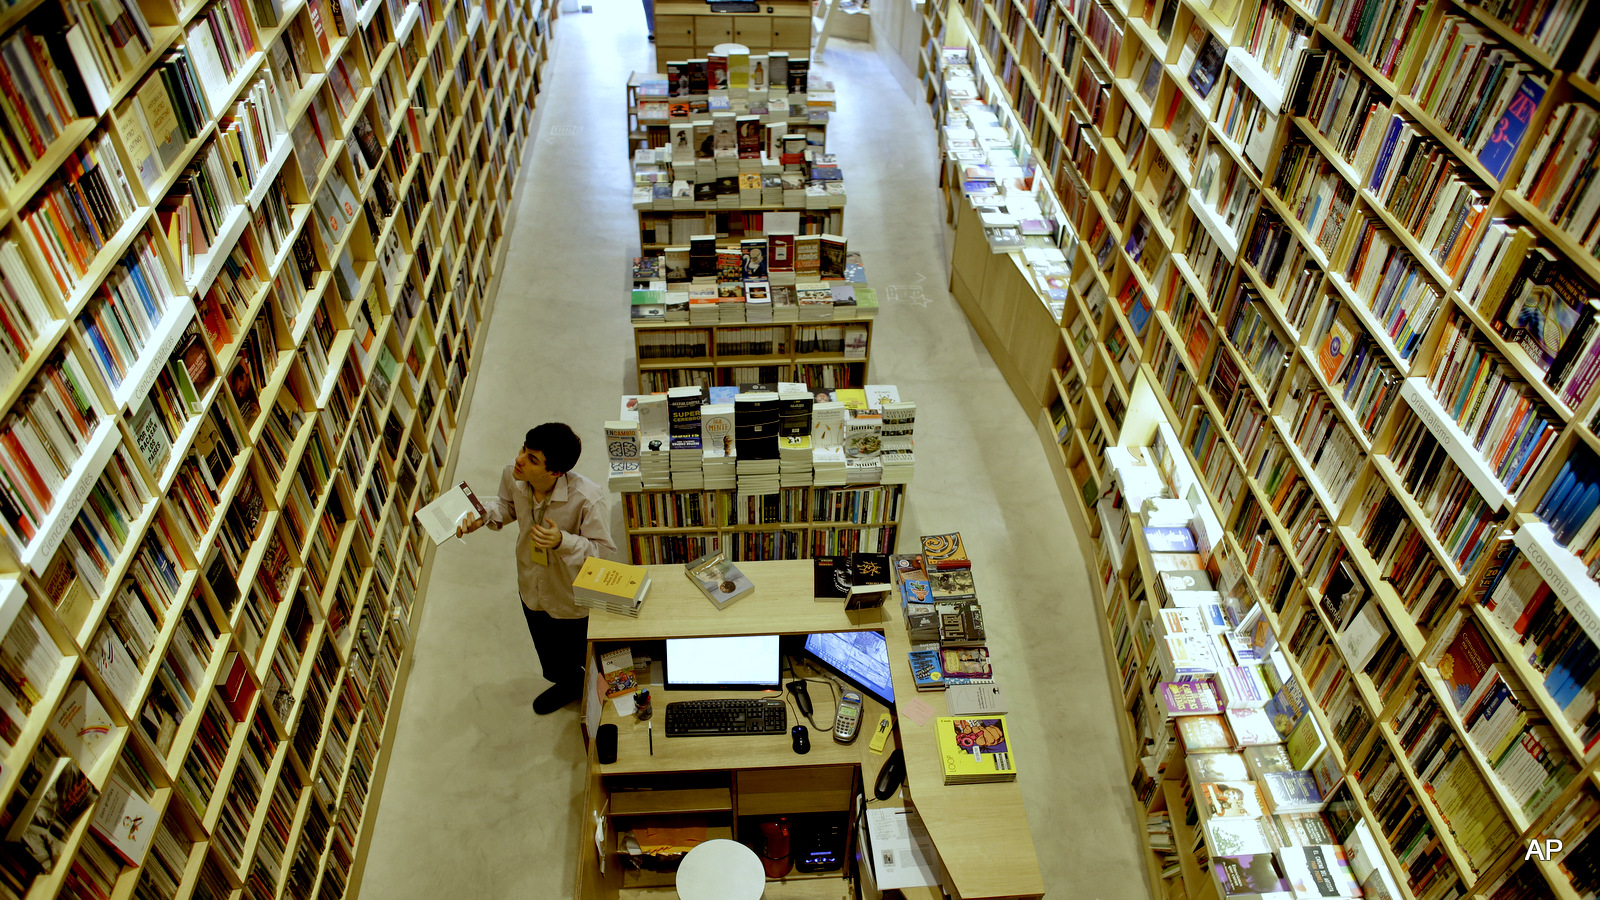 An employee works at a bookstore in Buenos Aires, Argentina